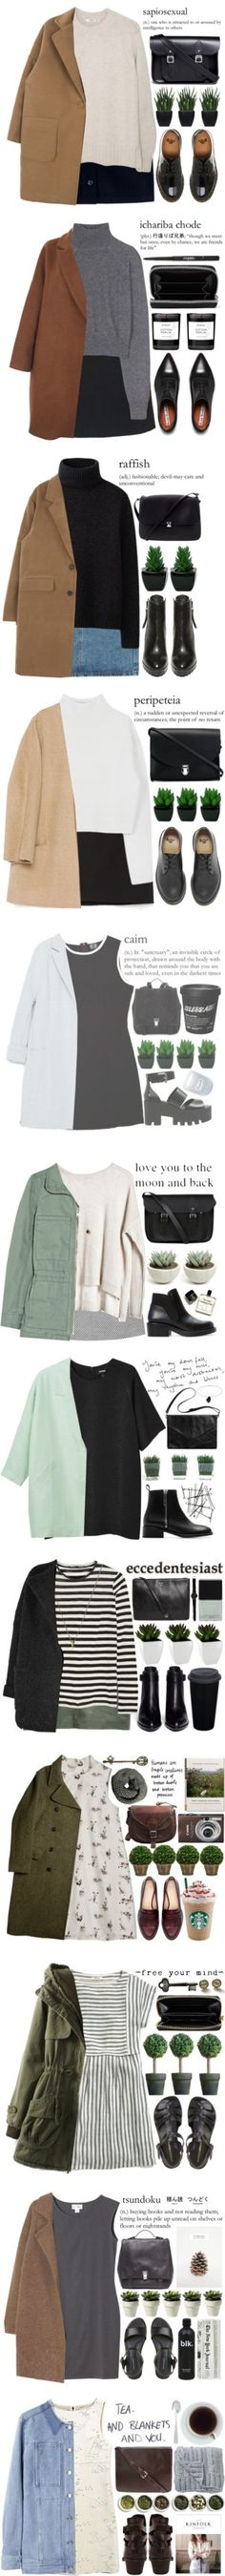 Jackets by evangeline-lily on Polyvore featuring A.P.C., MANGO, Dr. Martens, Lux-Art Silks, The Cambridge Satchel Company, women's clothing, women's fashion, women, female and woman